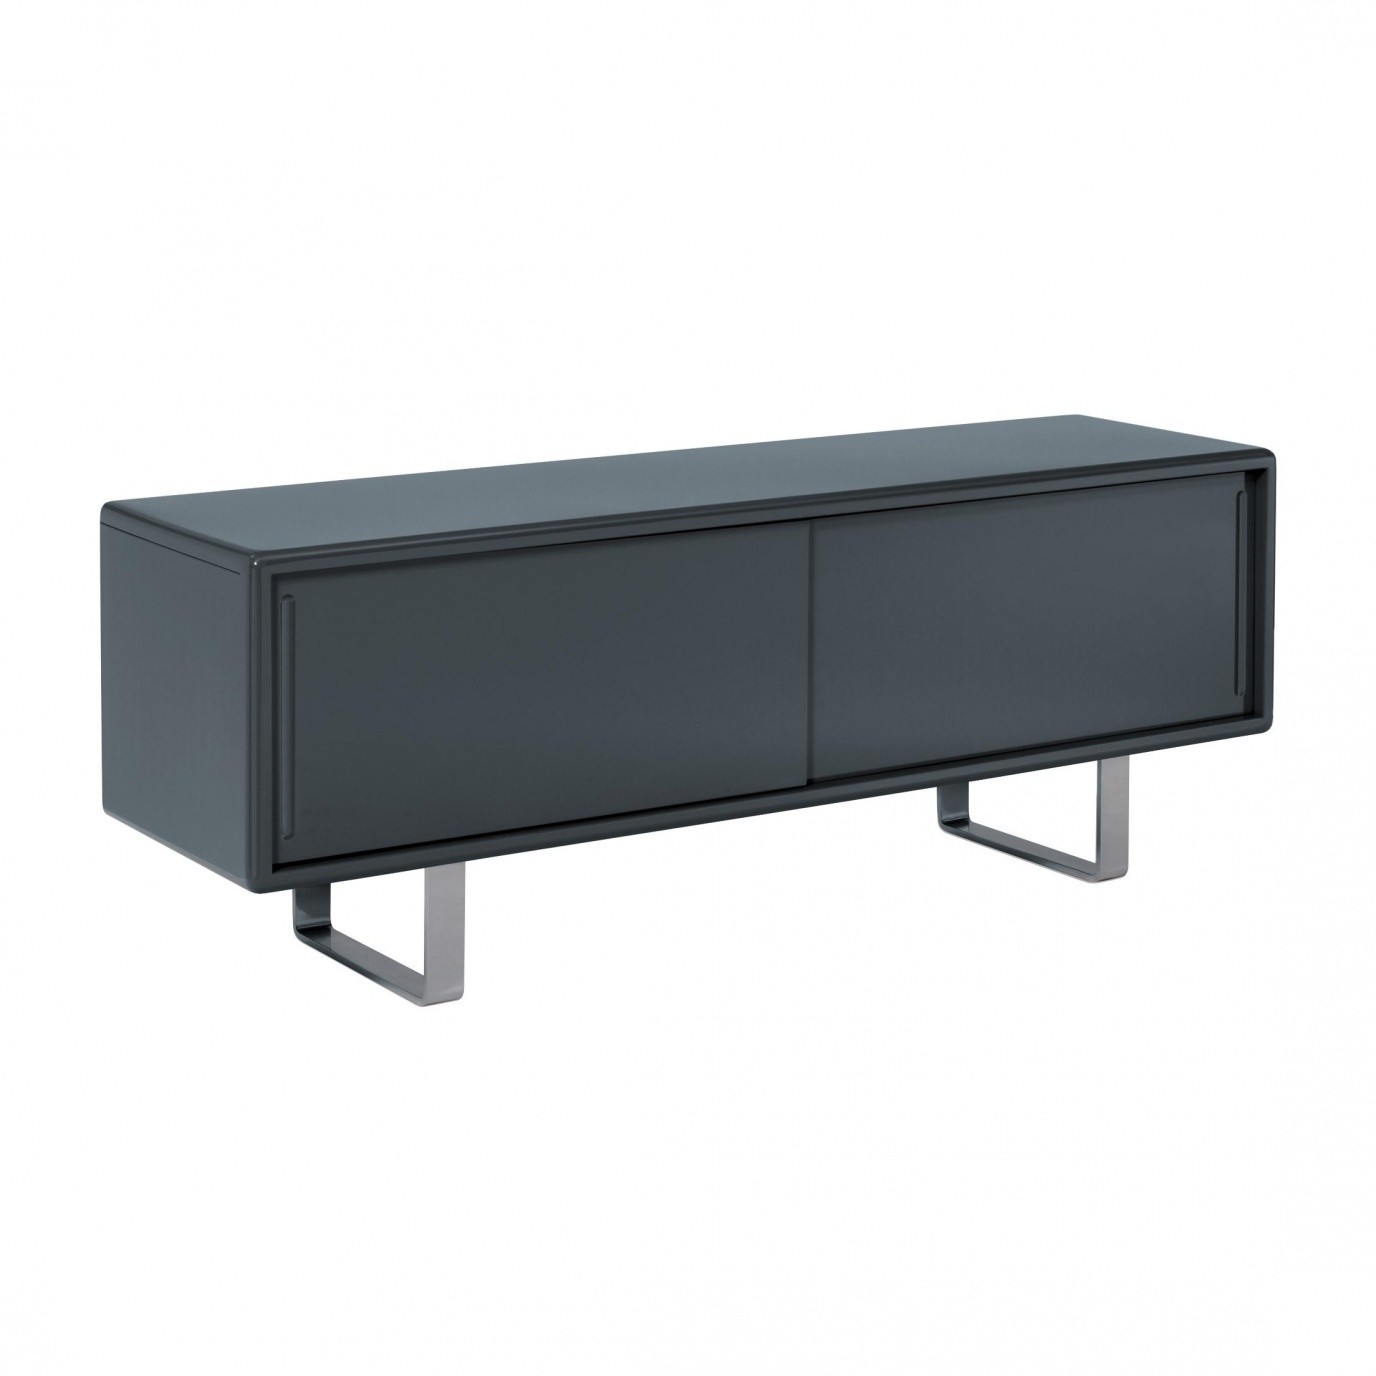 Muller Mobelfabrikation K16 S1 Sideboard With 2 Sliding Doors Skid